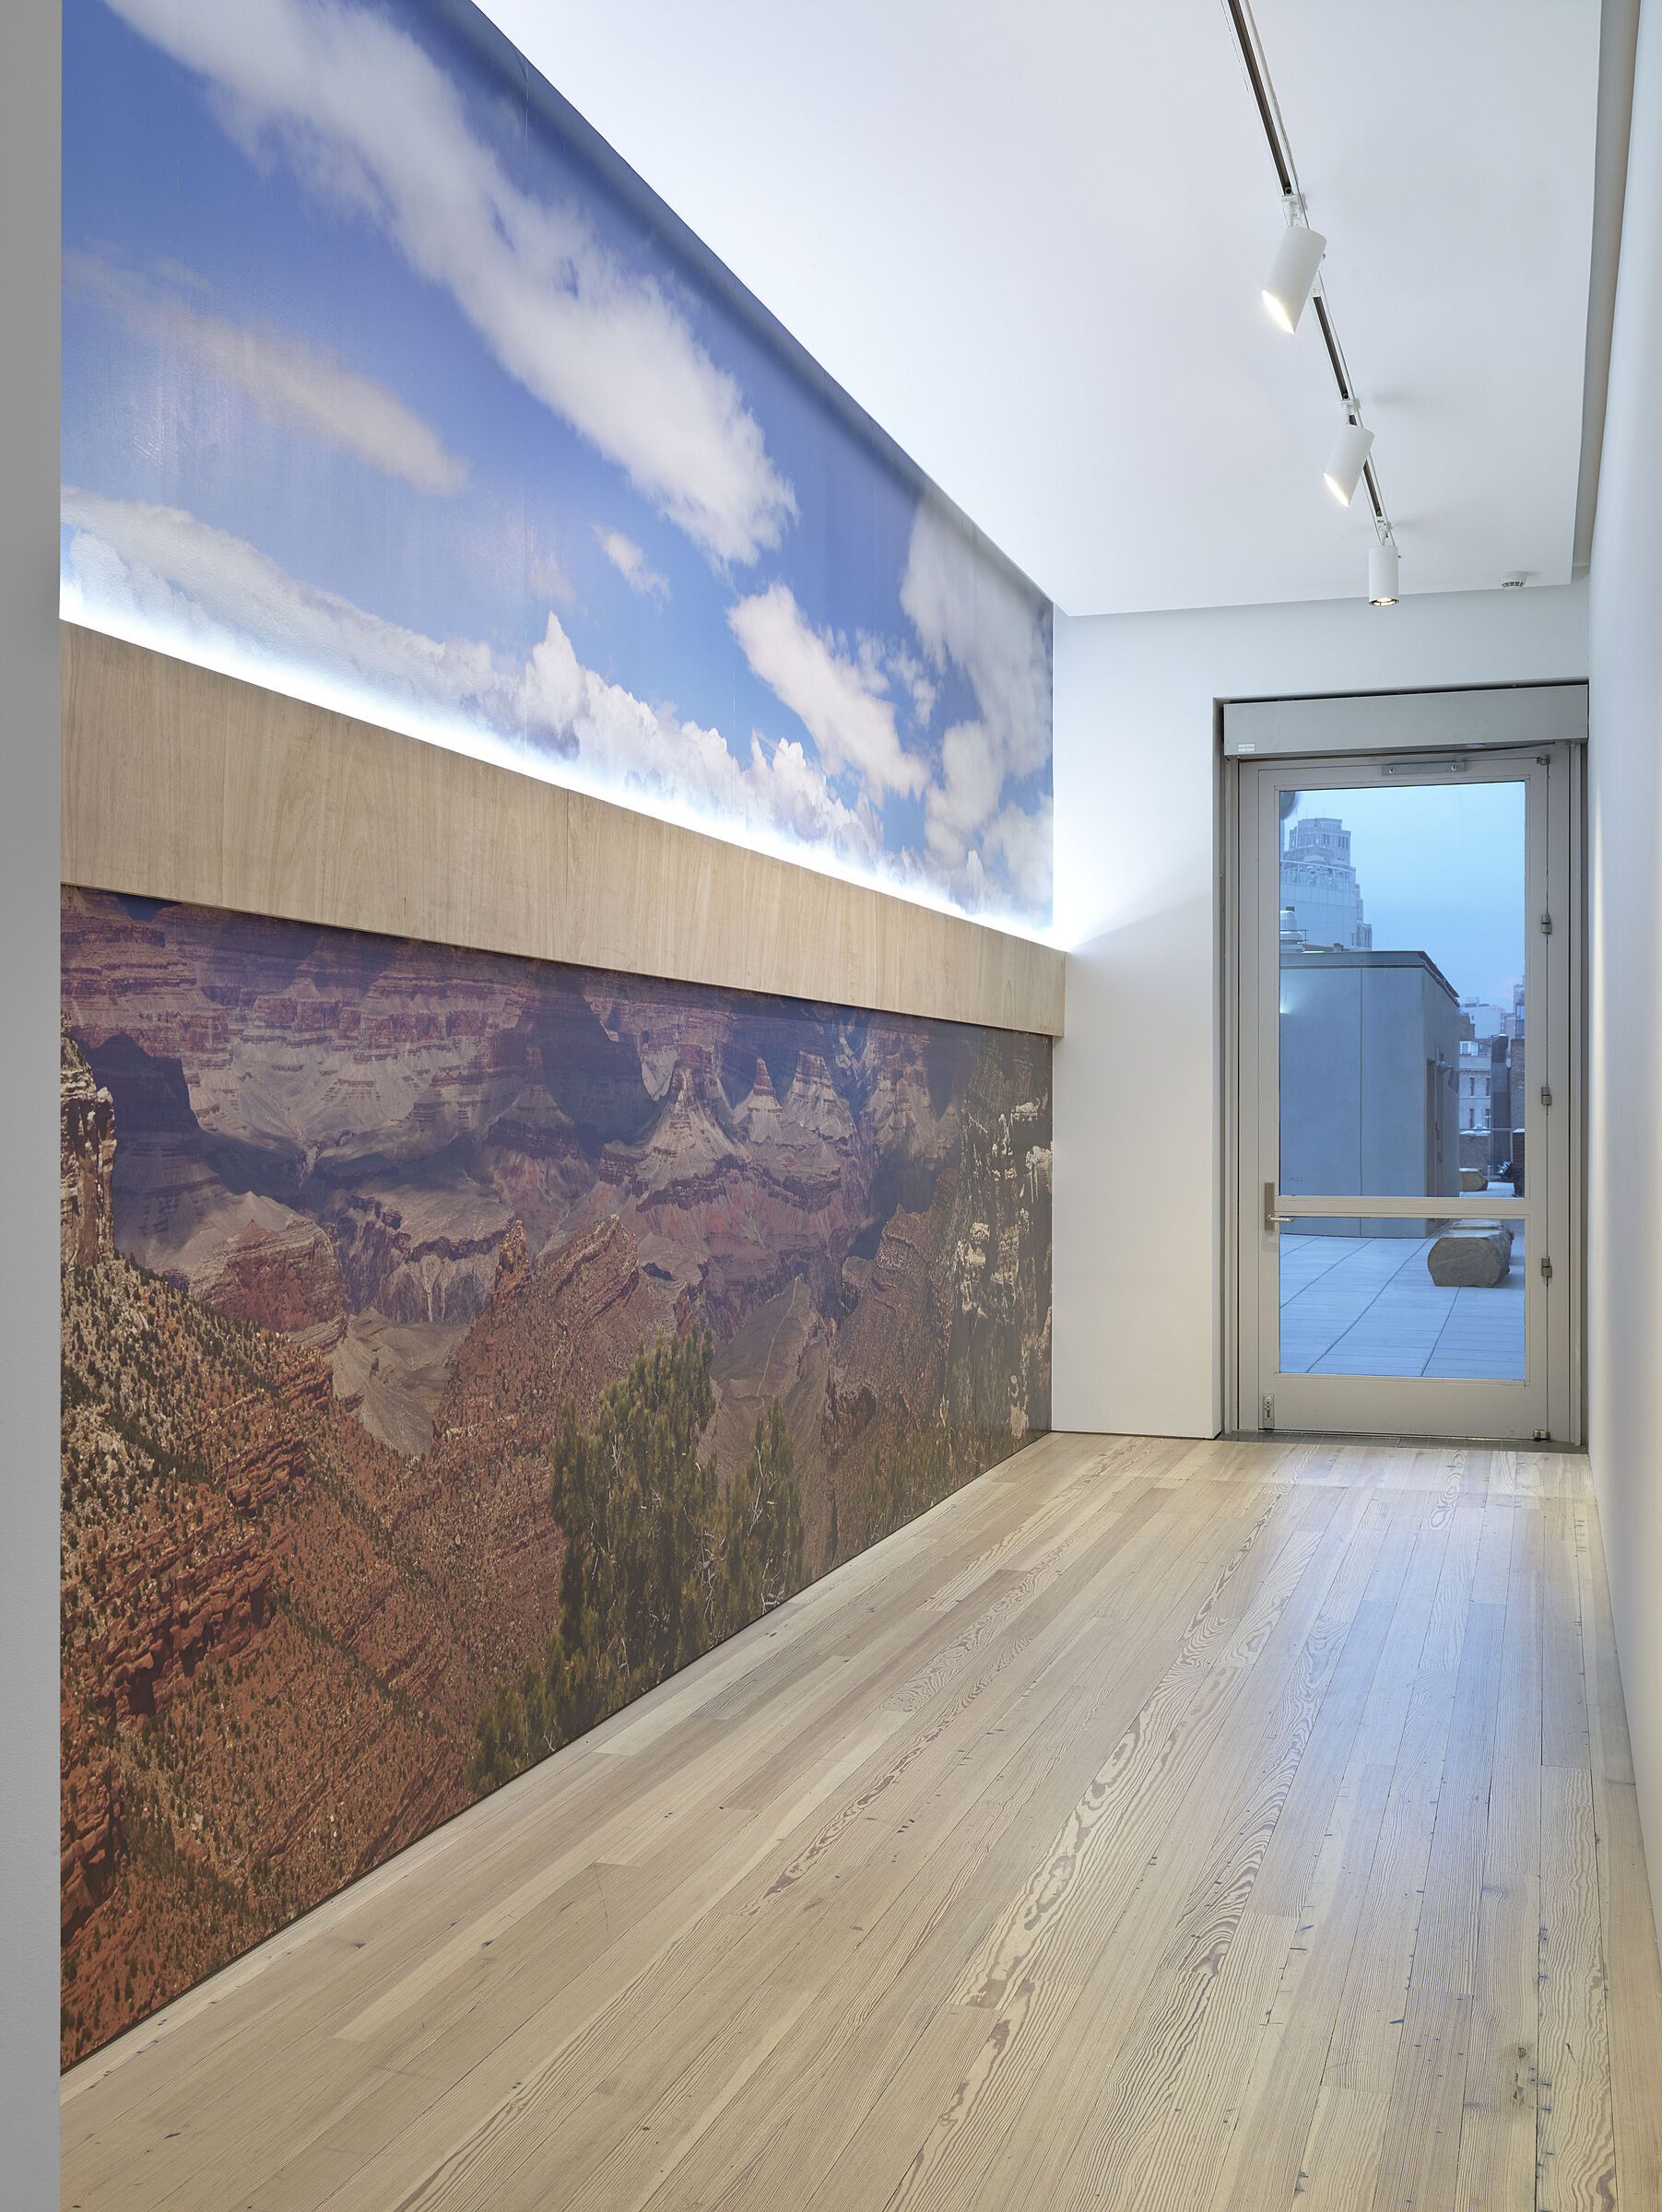 An art installation on a wall with clouds on top and an image of the Grand Canyon below.